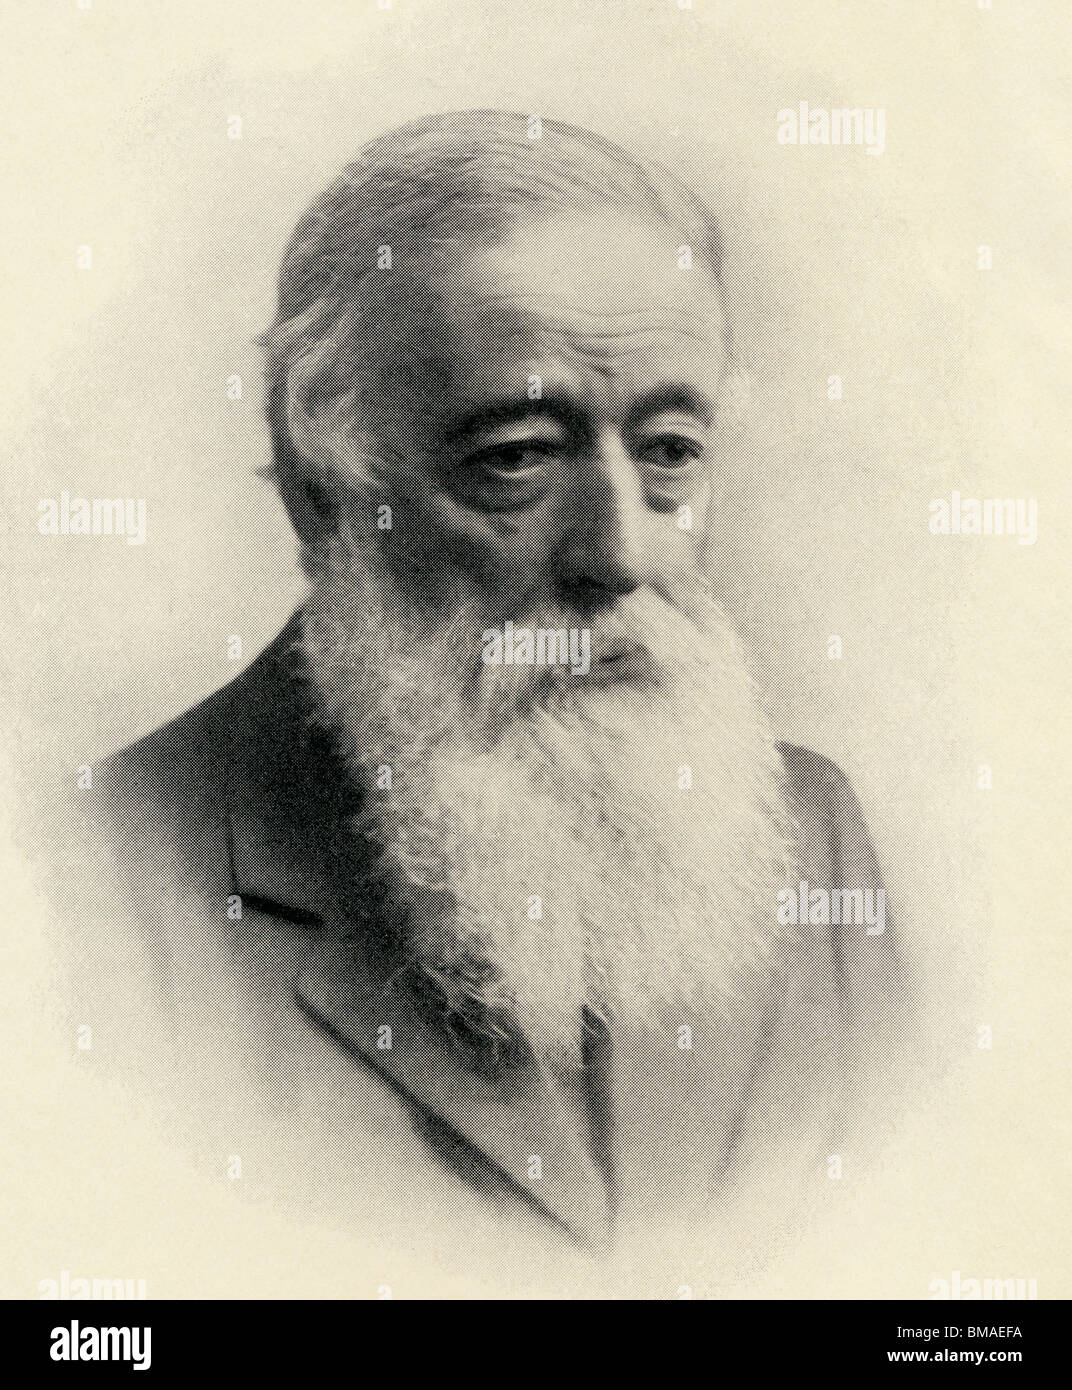 Charles Montagu Doughty, 1843 to 1926. English poet, writer, and traveller. - Stock Image